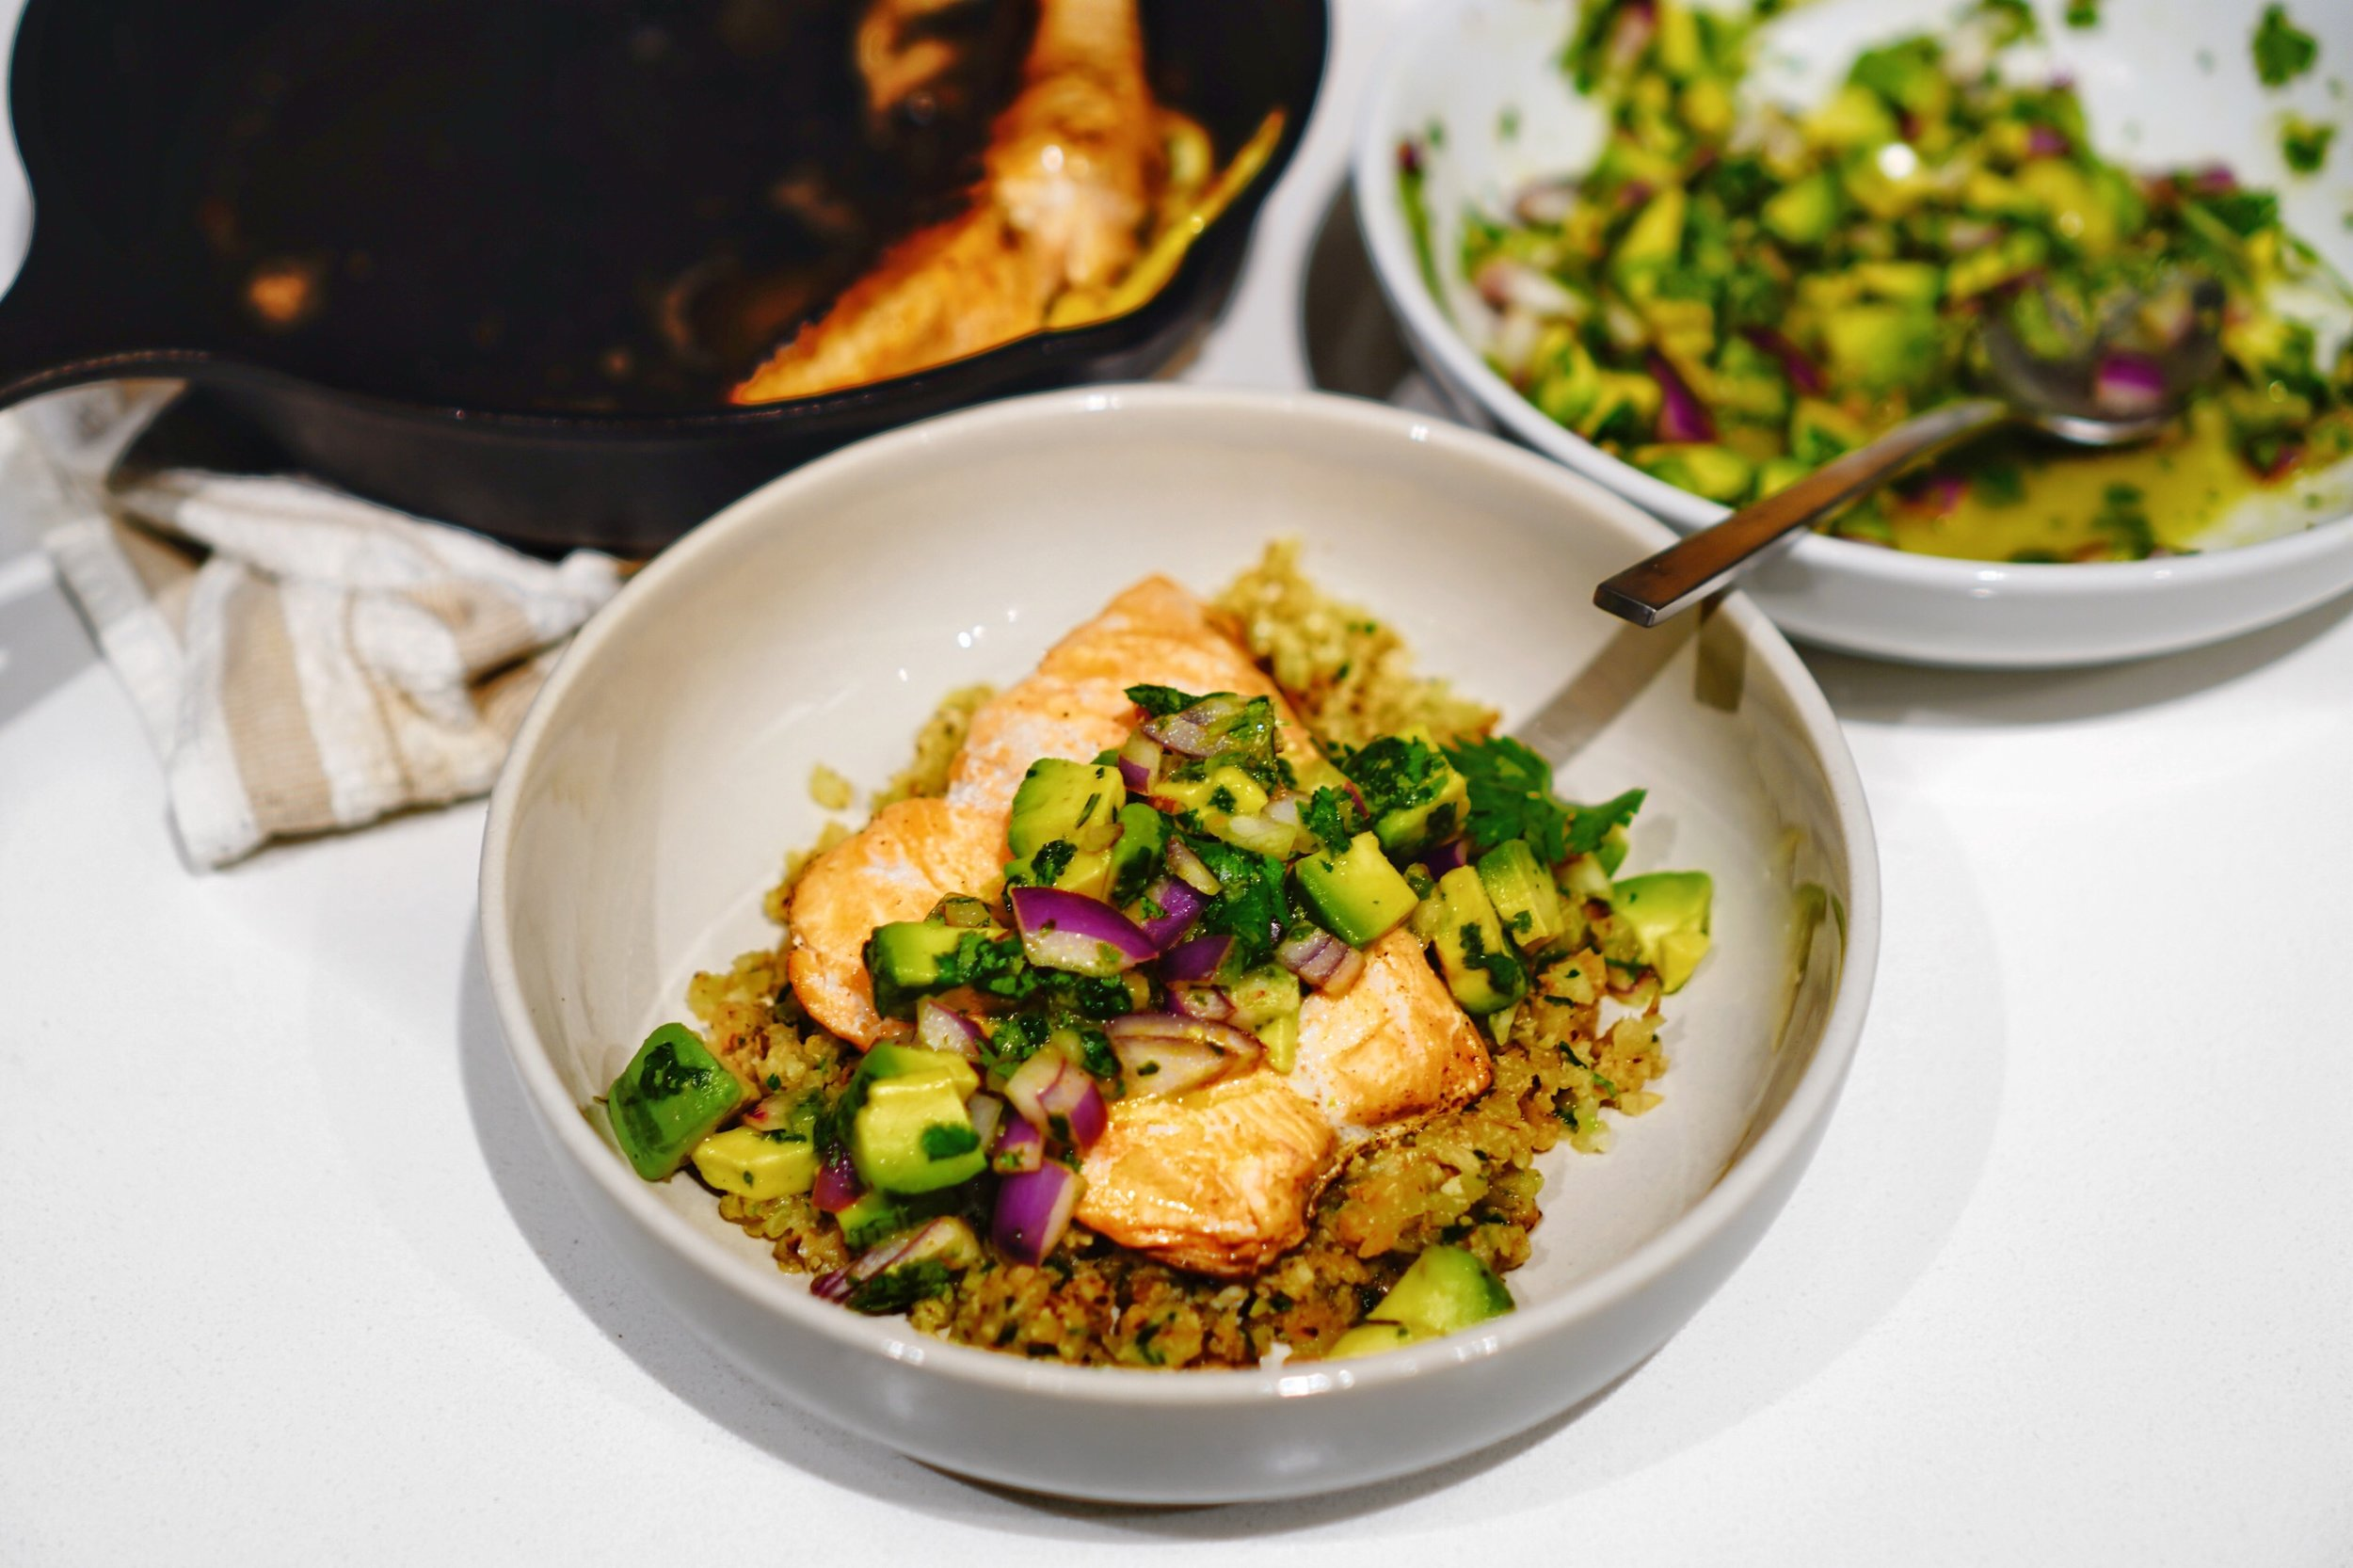 Salmon with Cilantro Cauli-Rice & Avocado Salsa